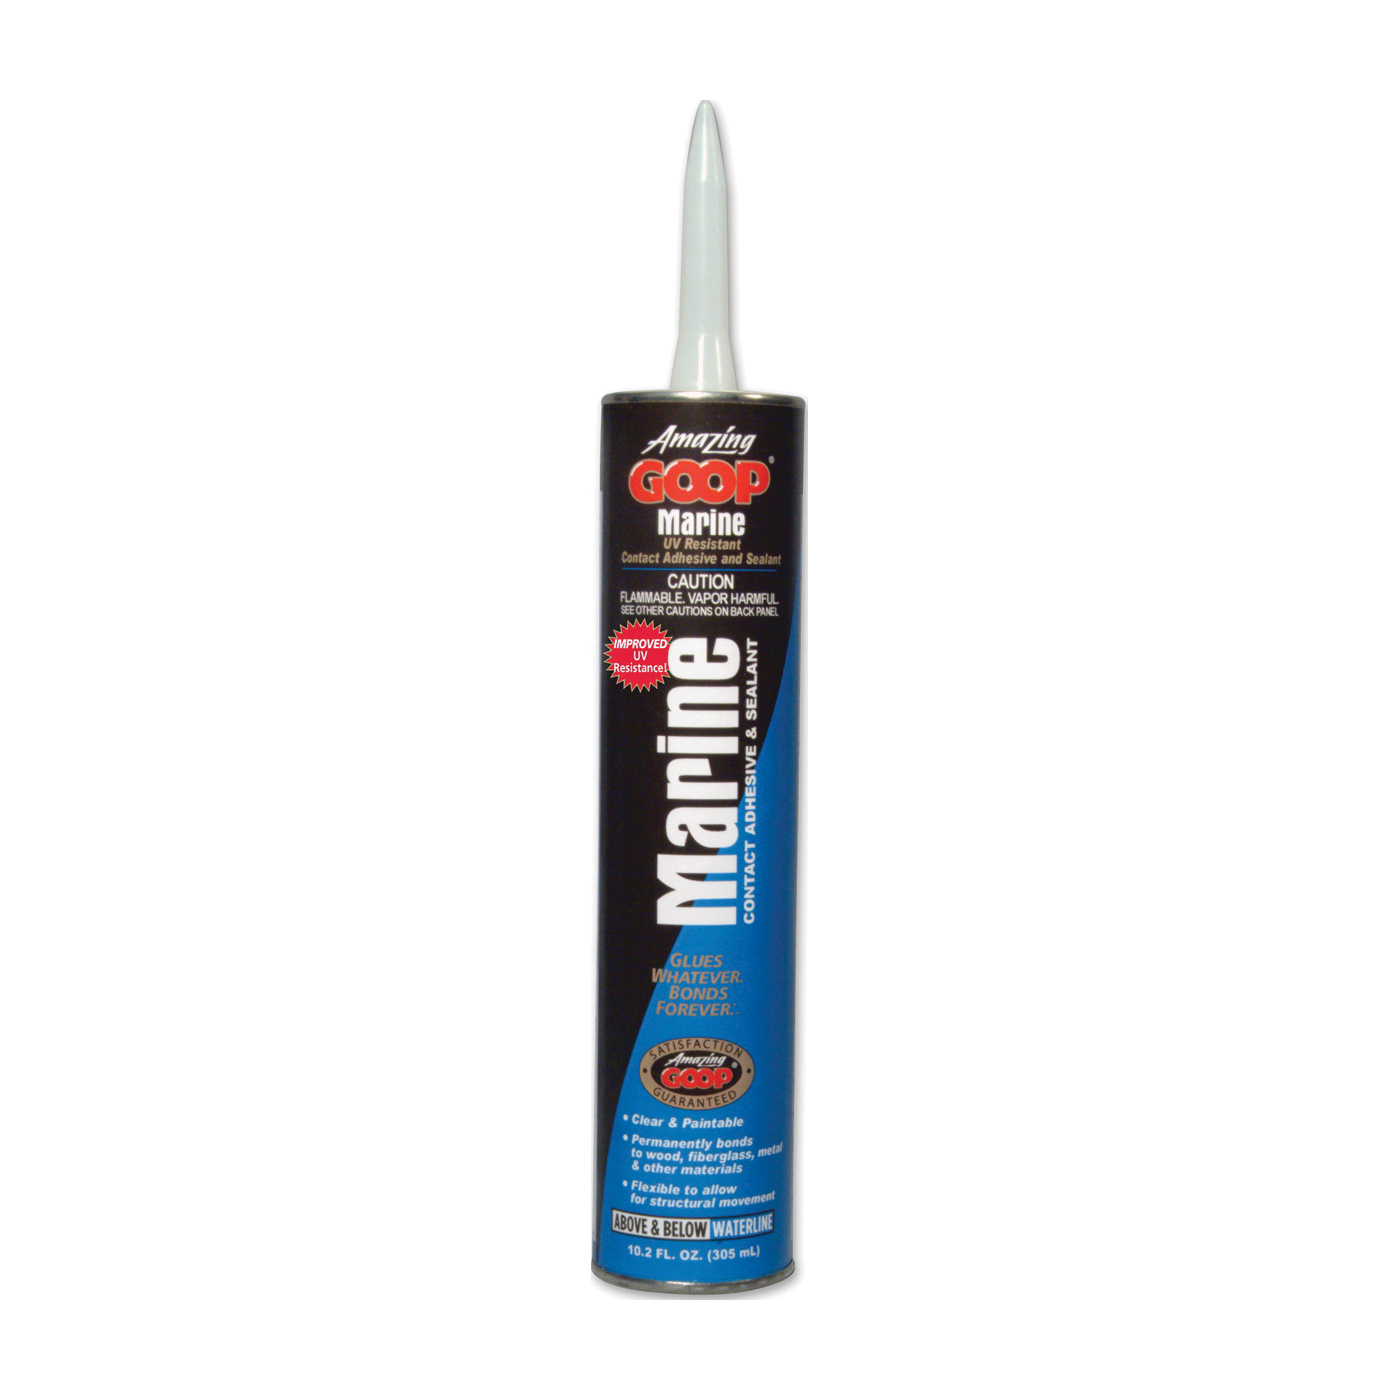 Picture of ECLECTIC 172034 Marine Adhesive Caulk, Clear, 48 to 72 hr Curing, -40 to 150 deg F, 301.6 mL Package, Tube